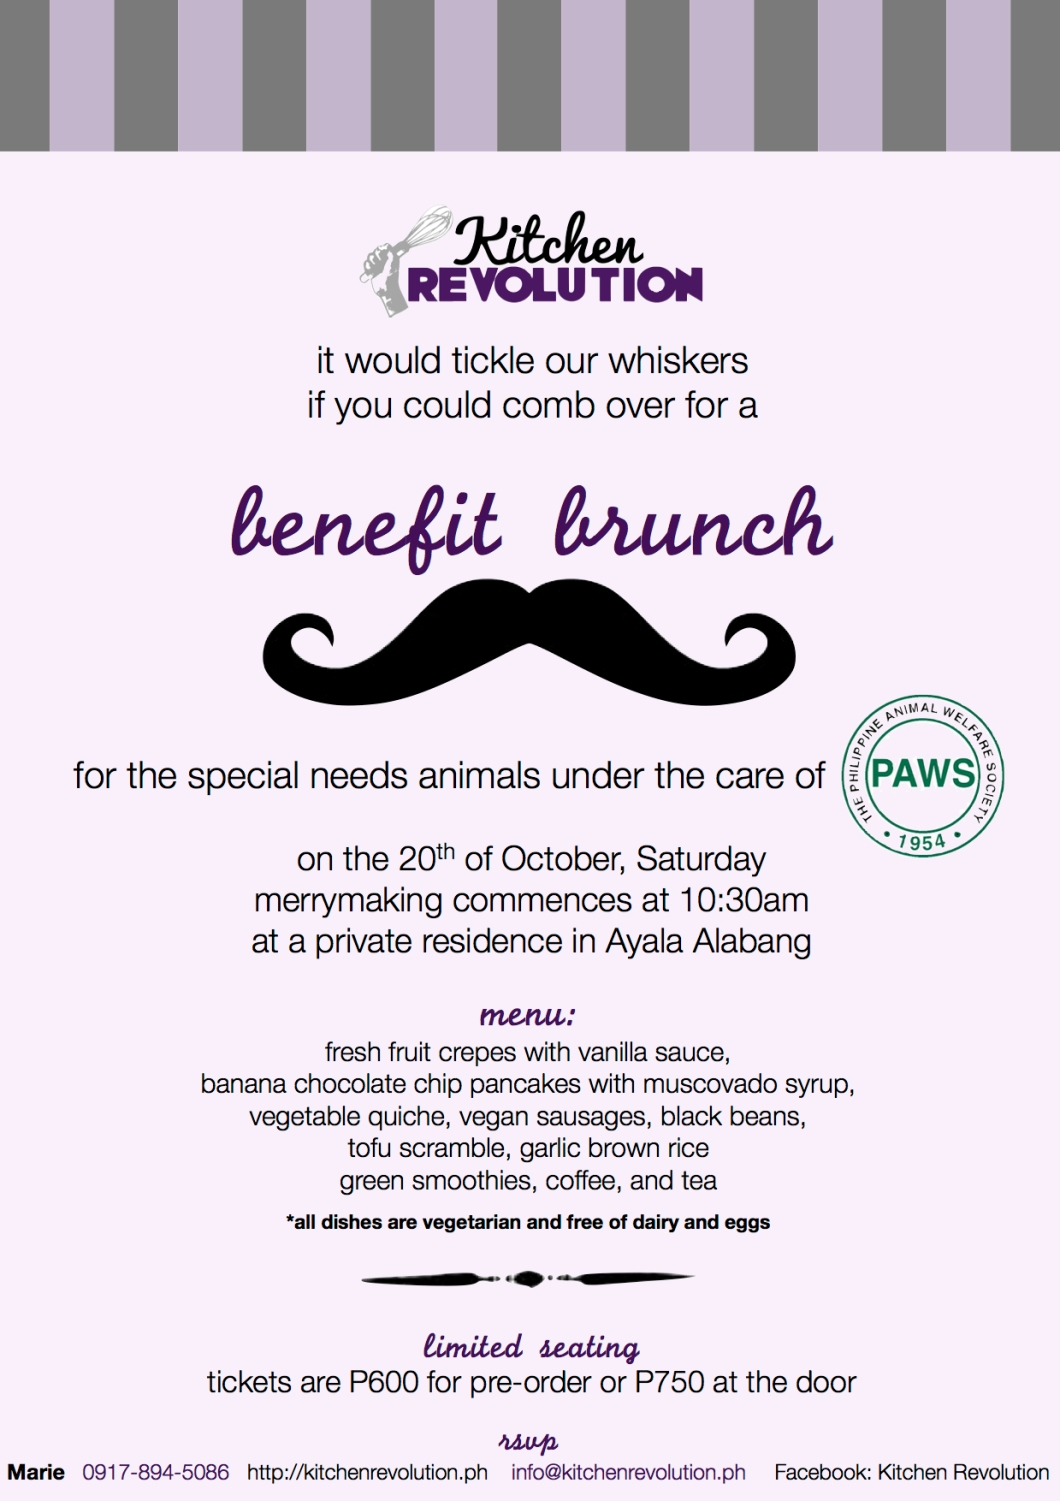 Cordially invited definition invitationjdi you are cordially invited to a paws benefit brunch kitchen revolution stopboris Images